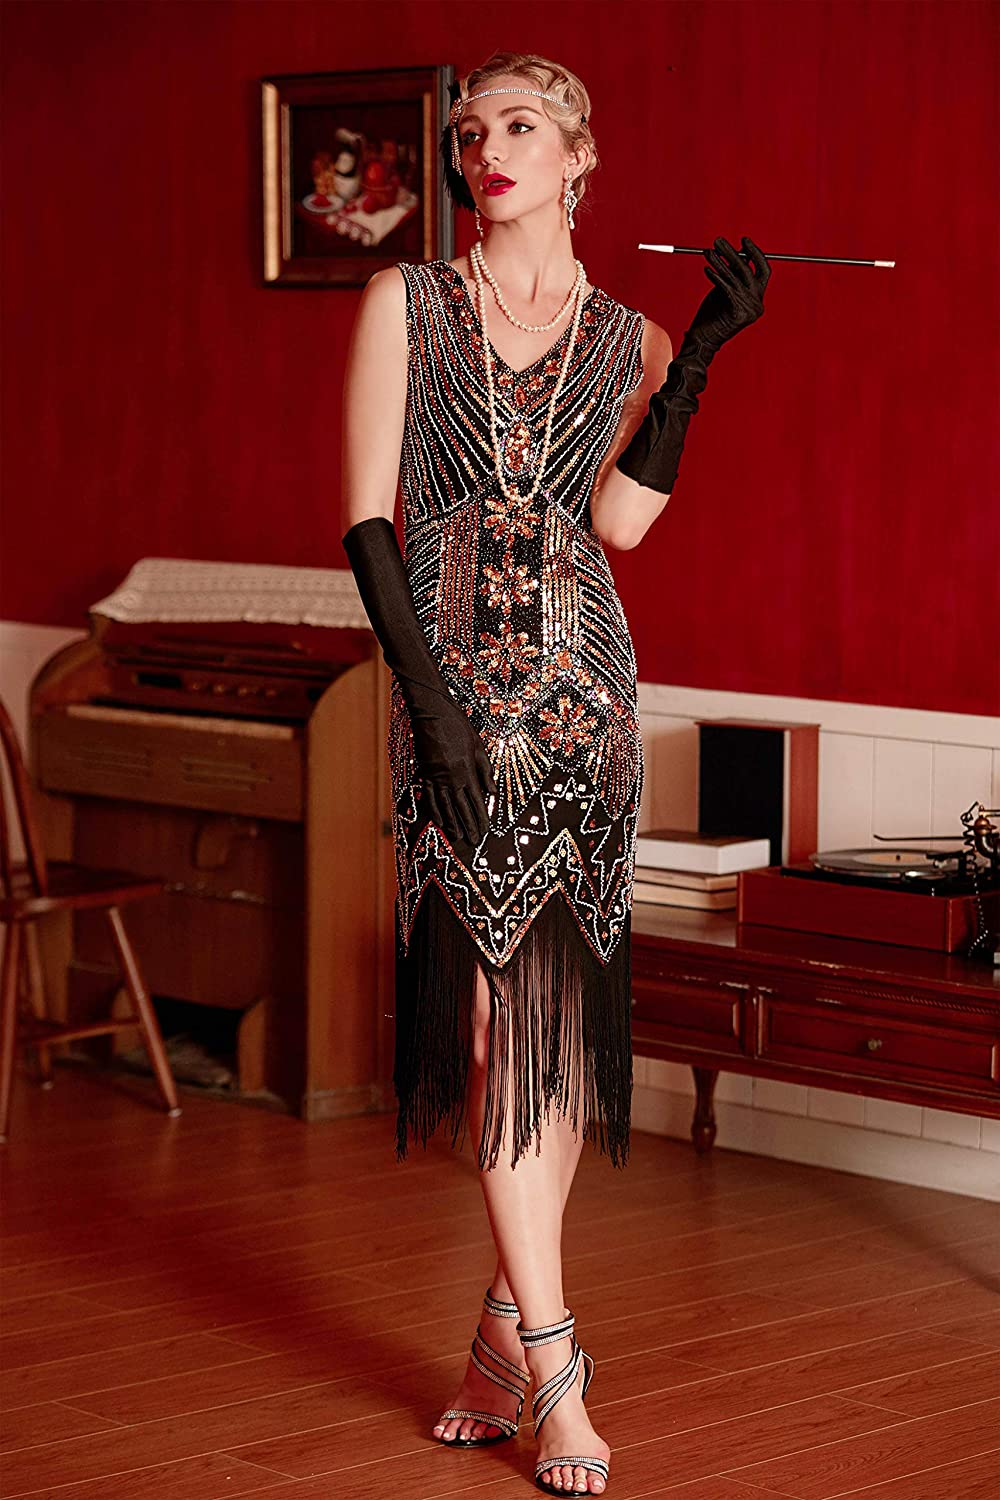 Charleston Dress: Fringe Flapper Dress Metme Womens Flapper Dress 1920s V Neck Beaded Fringed Gatsby Theme Roaring 20s Dress for Prom $57.99 AT vintagedancer.com